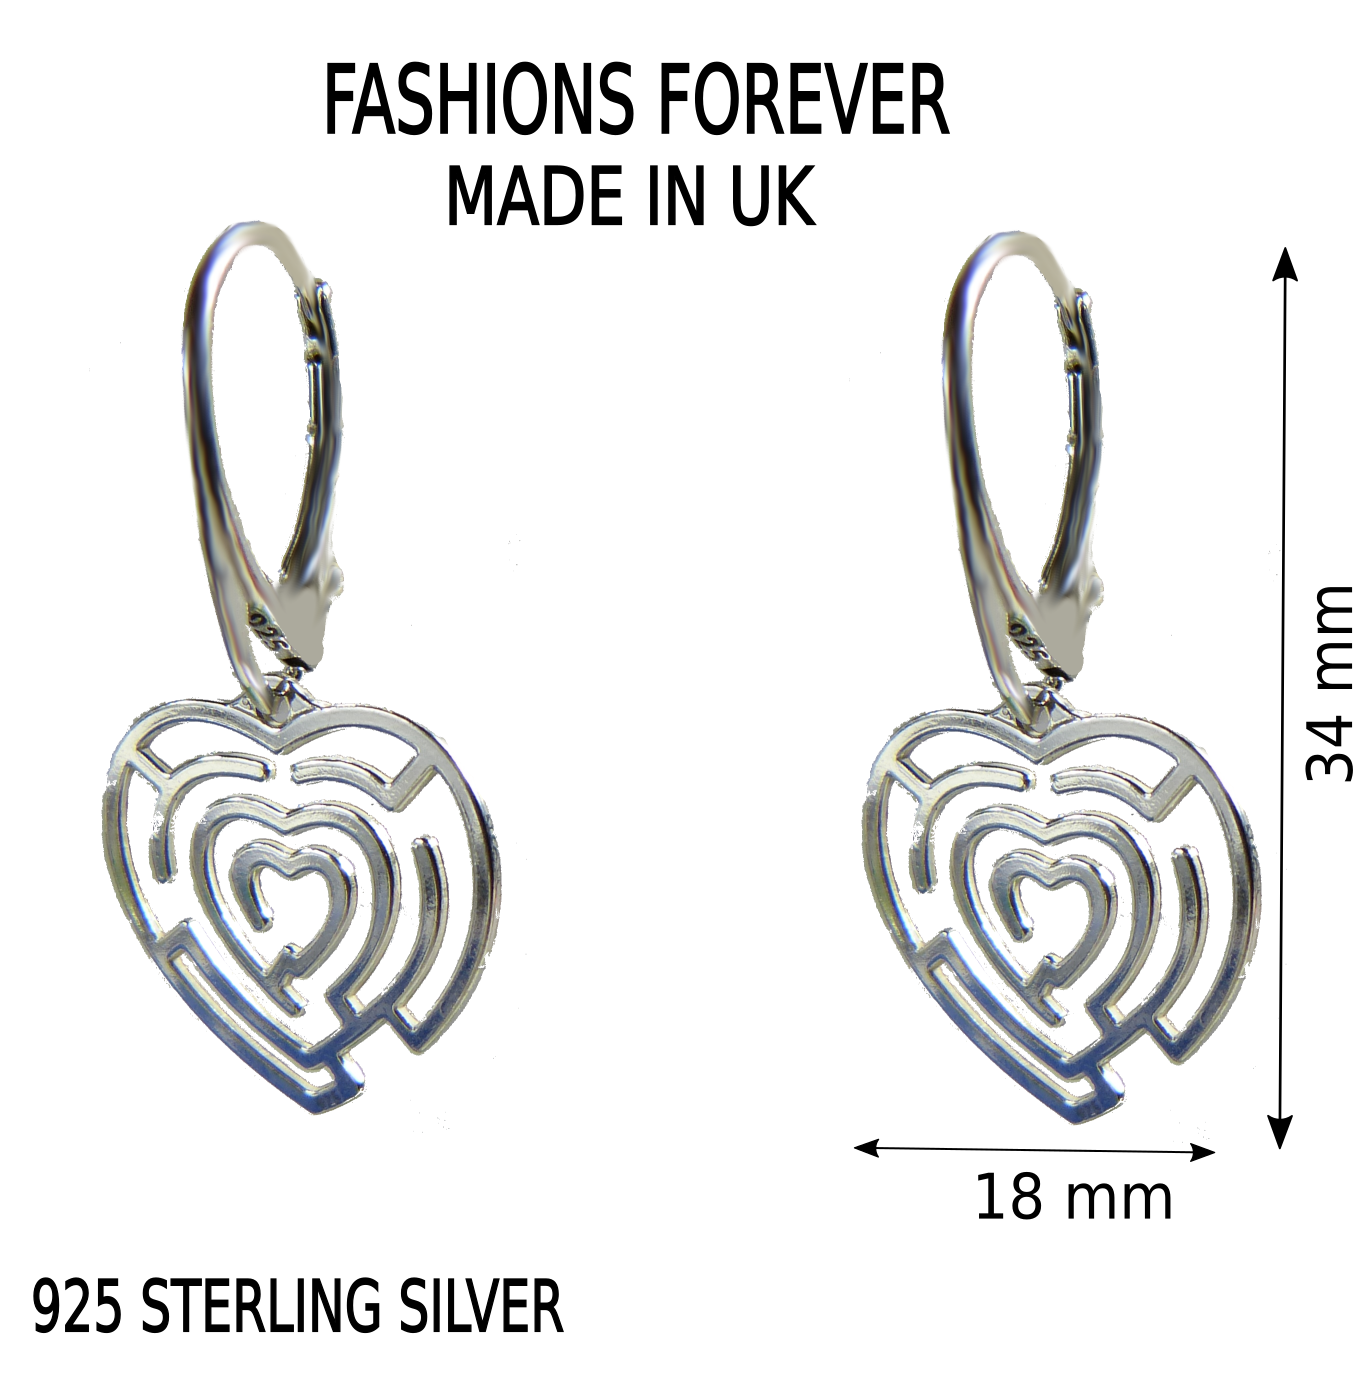 leverbacks bitmap sterling silver earrings maze anklet love fashions forever heart leverback shop